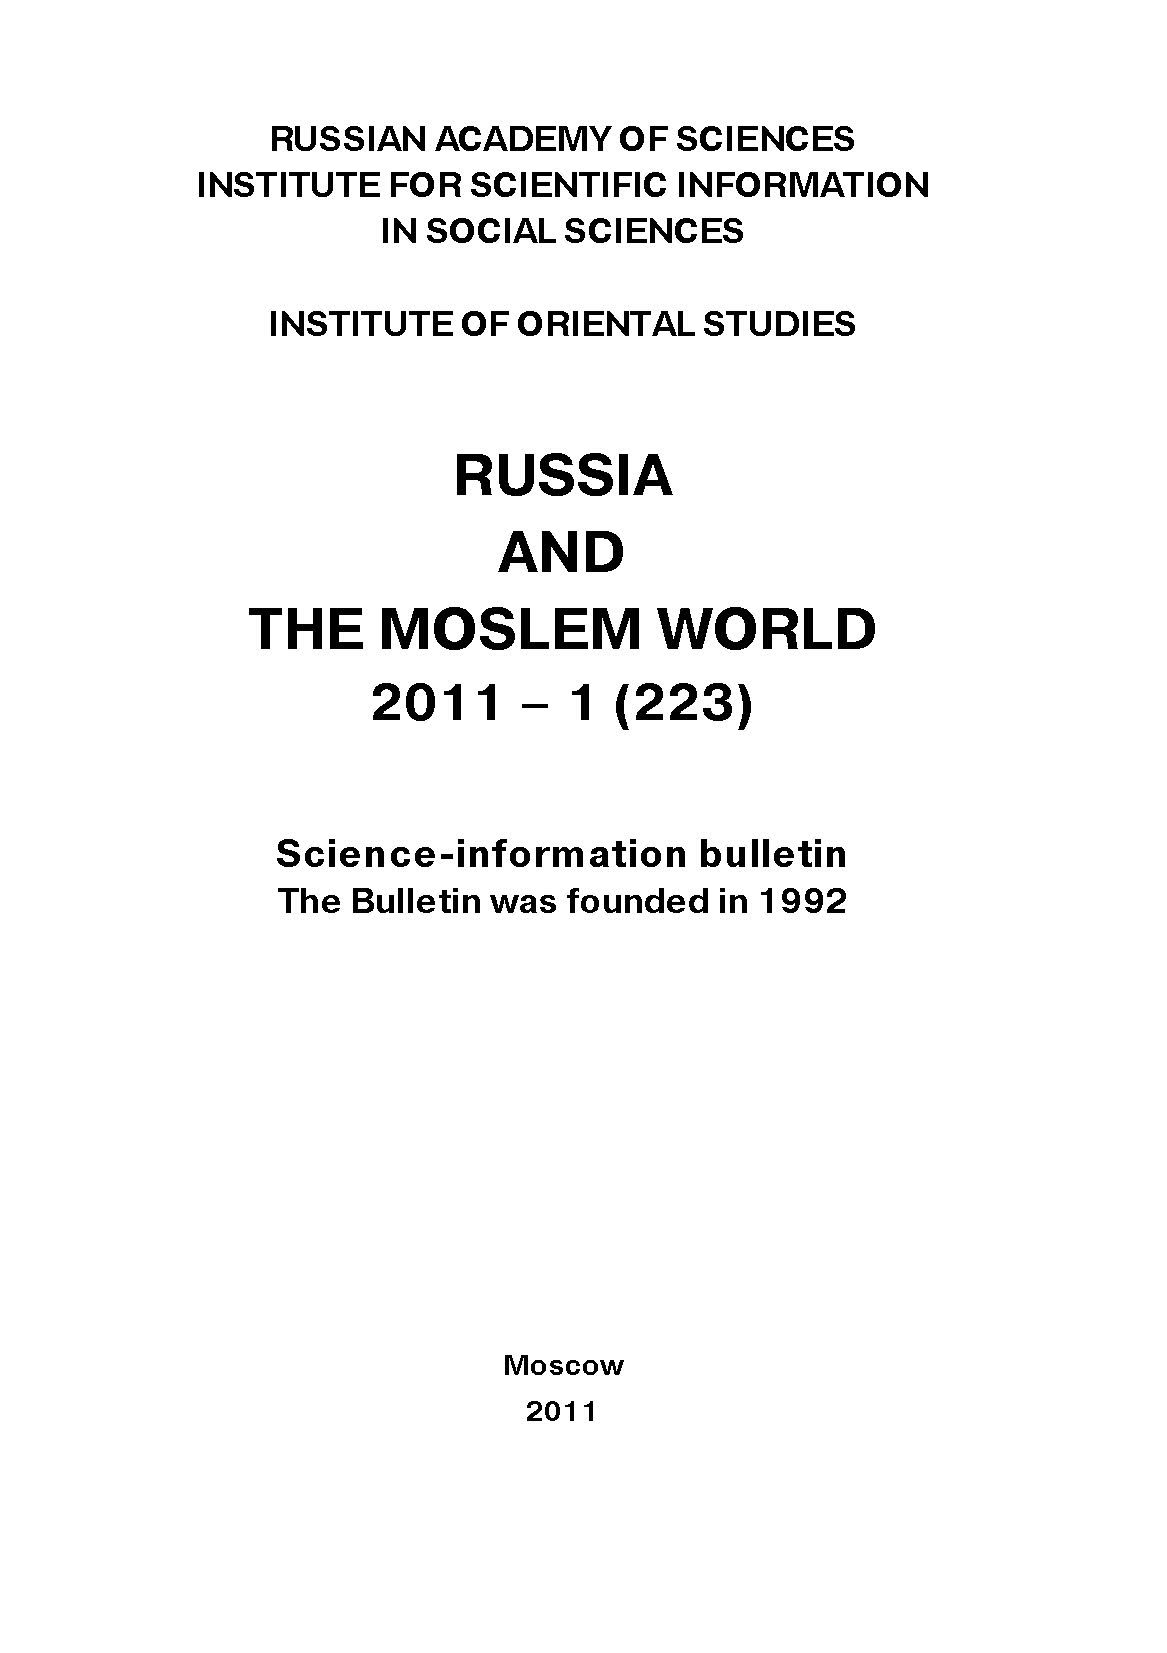 Russia and the Moslem World№ 01 / 2011